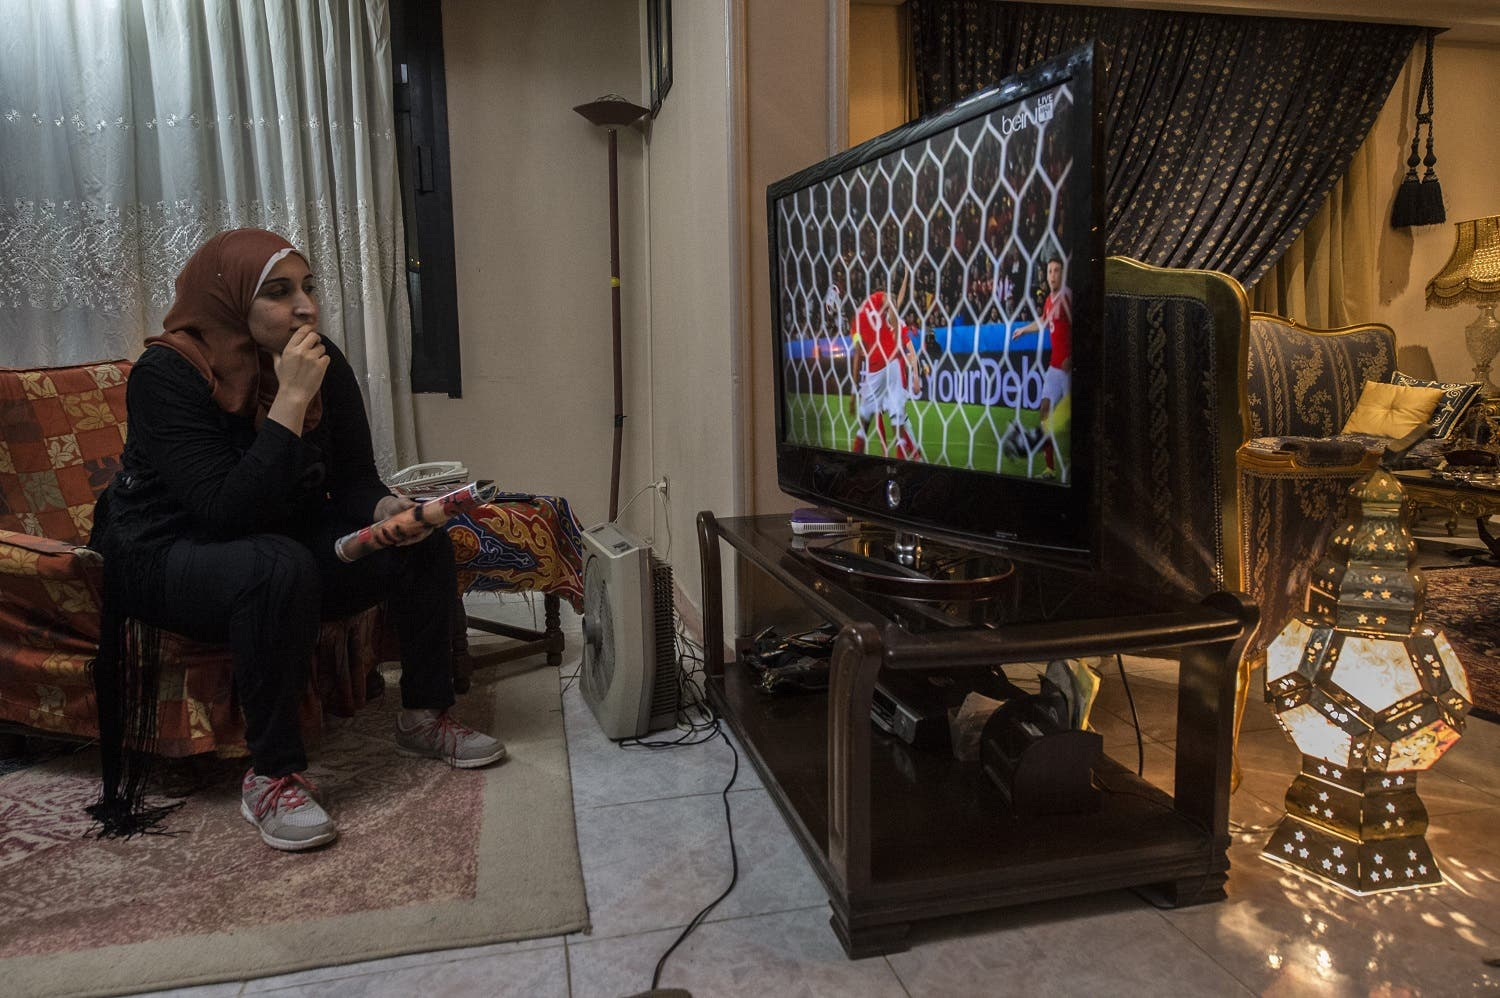 Football analyst Manar Sarhan watches the Euro 2016 quarter-final between Wales and Belgium at her home in the Egyptian capital Cairo. (AFP)